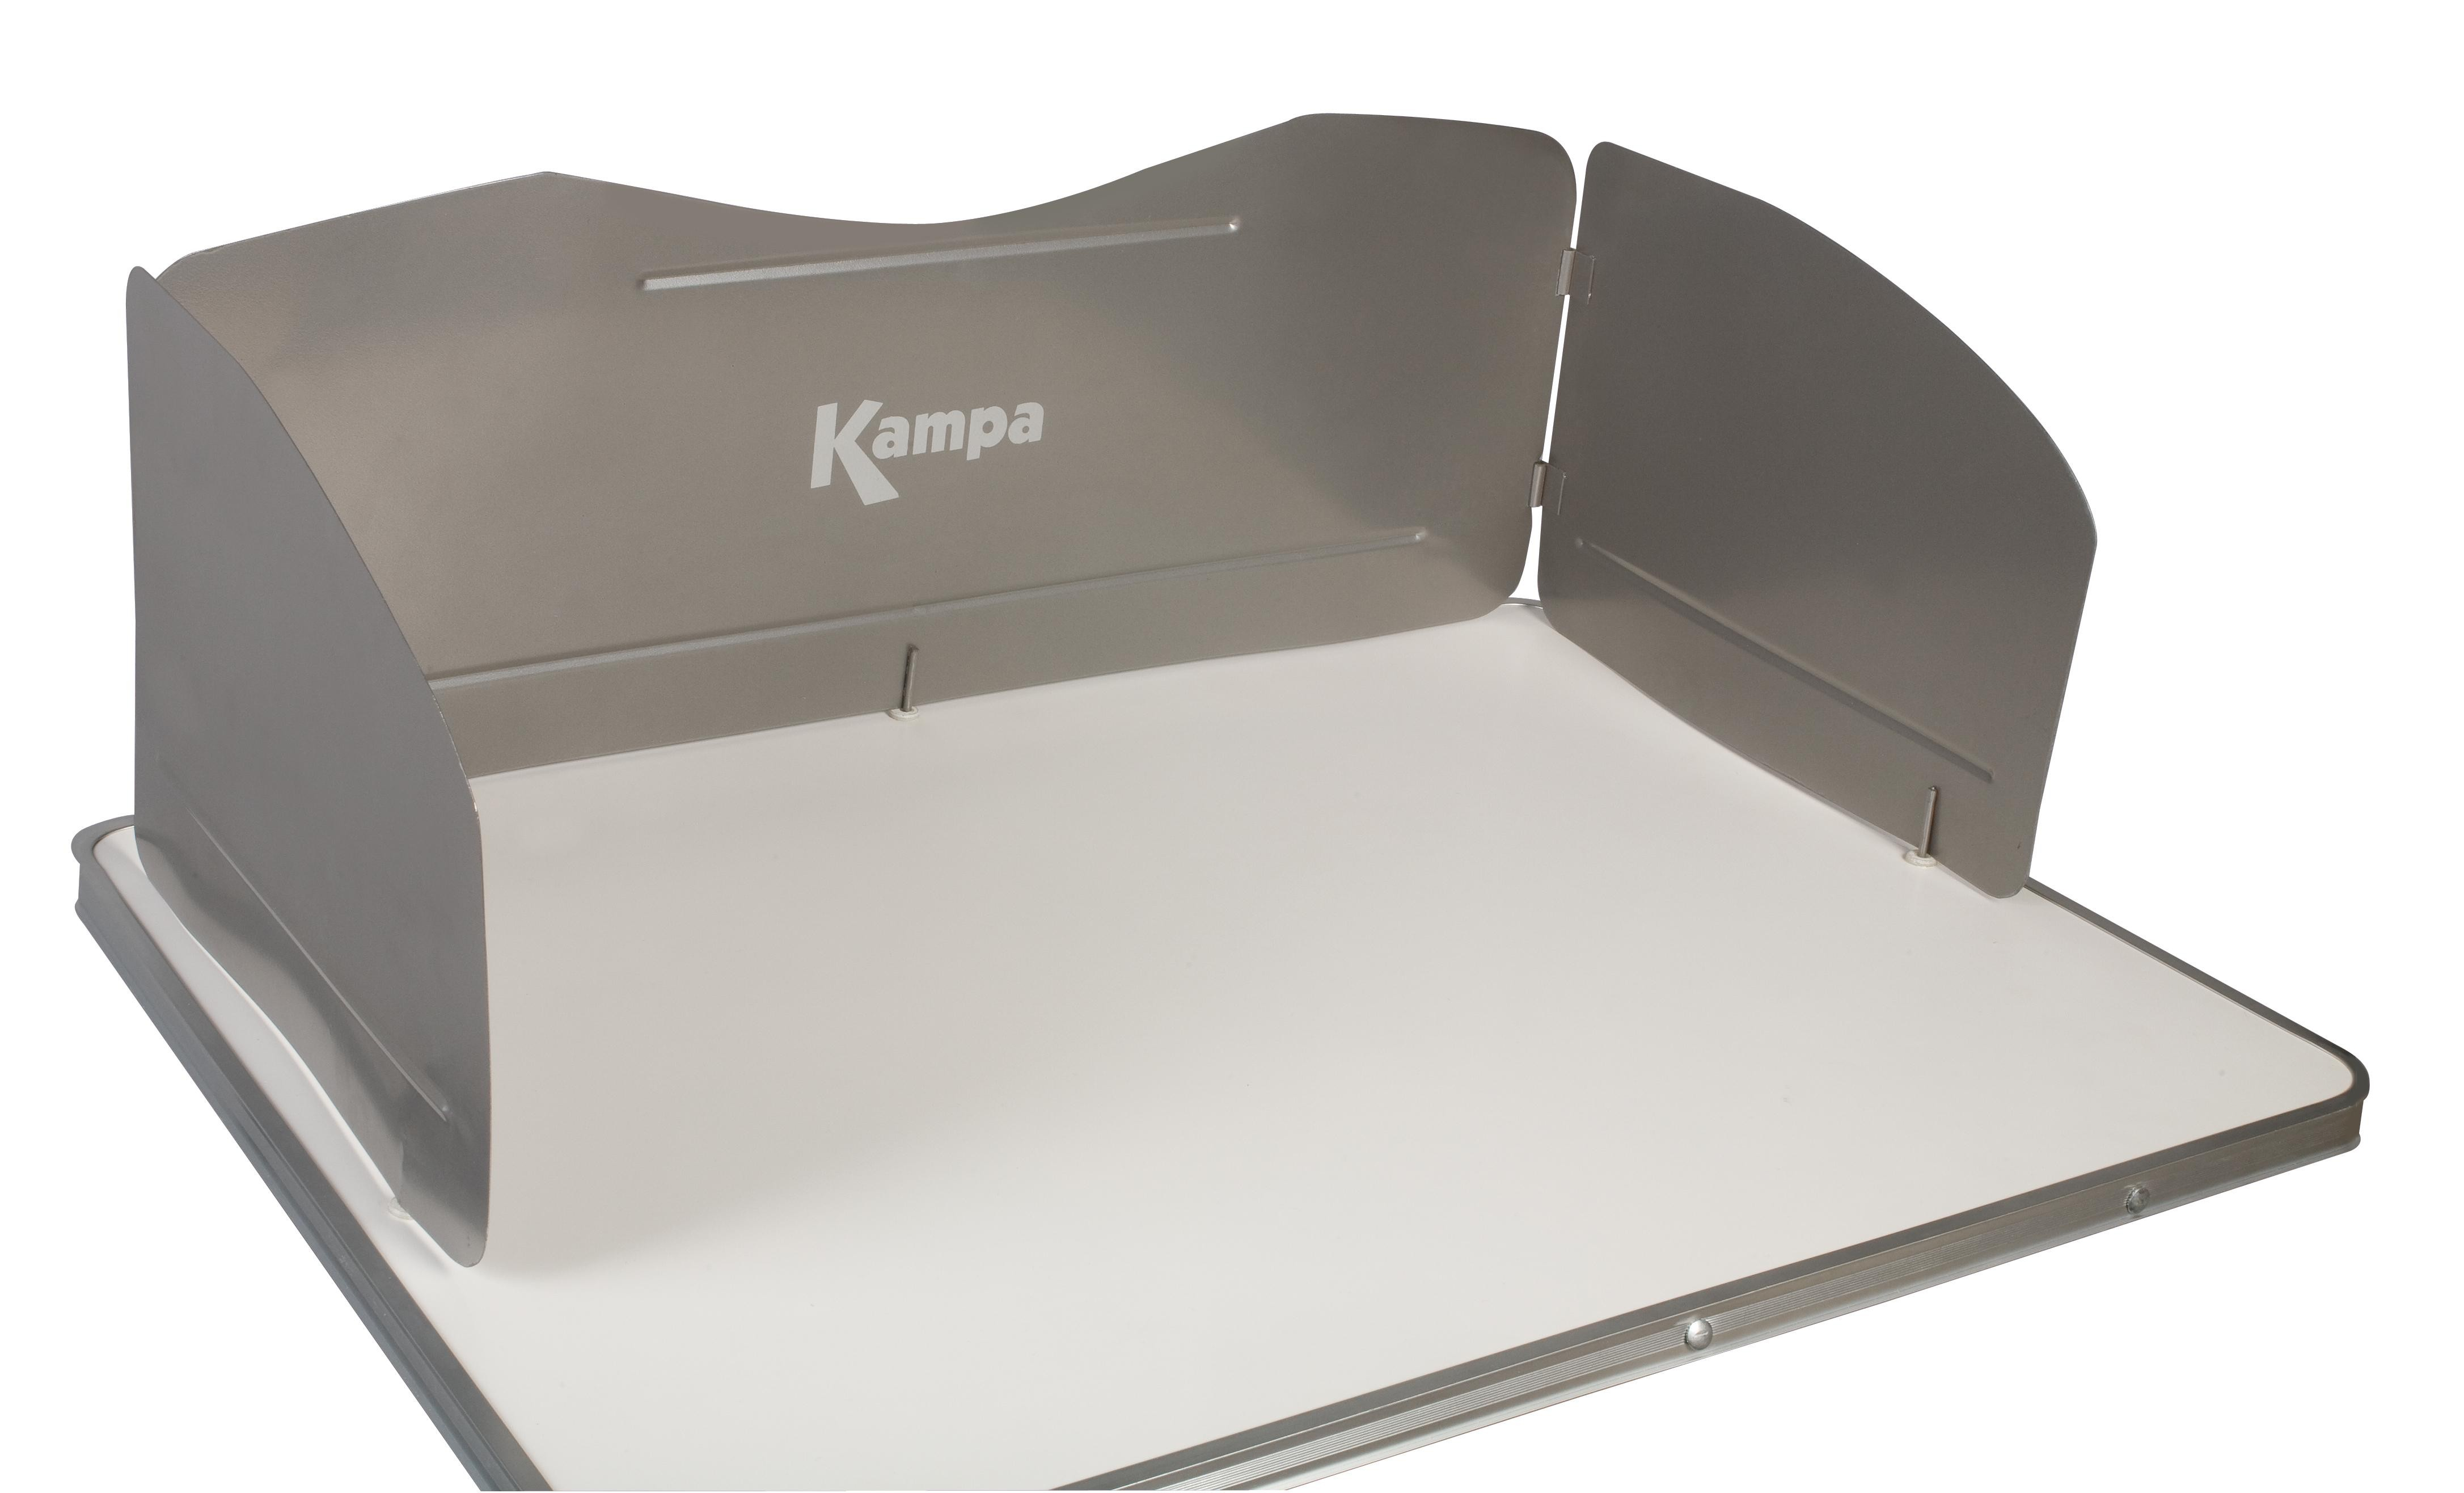 Kampa Kitchen Windshield from Kampa for special £12.00